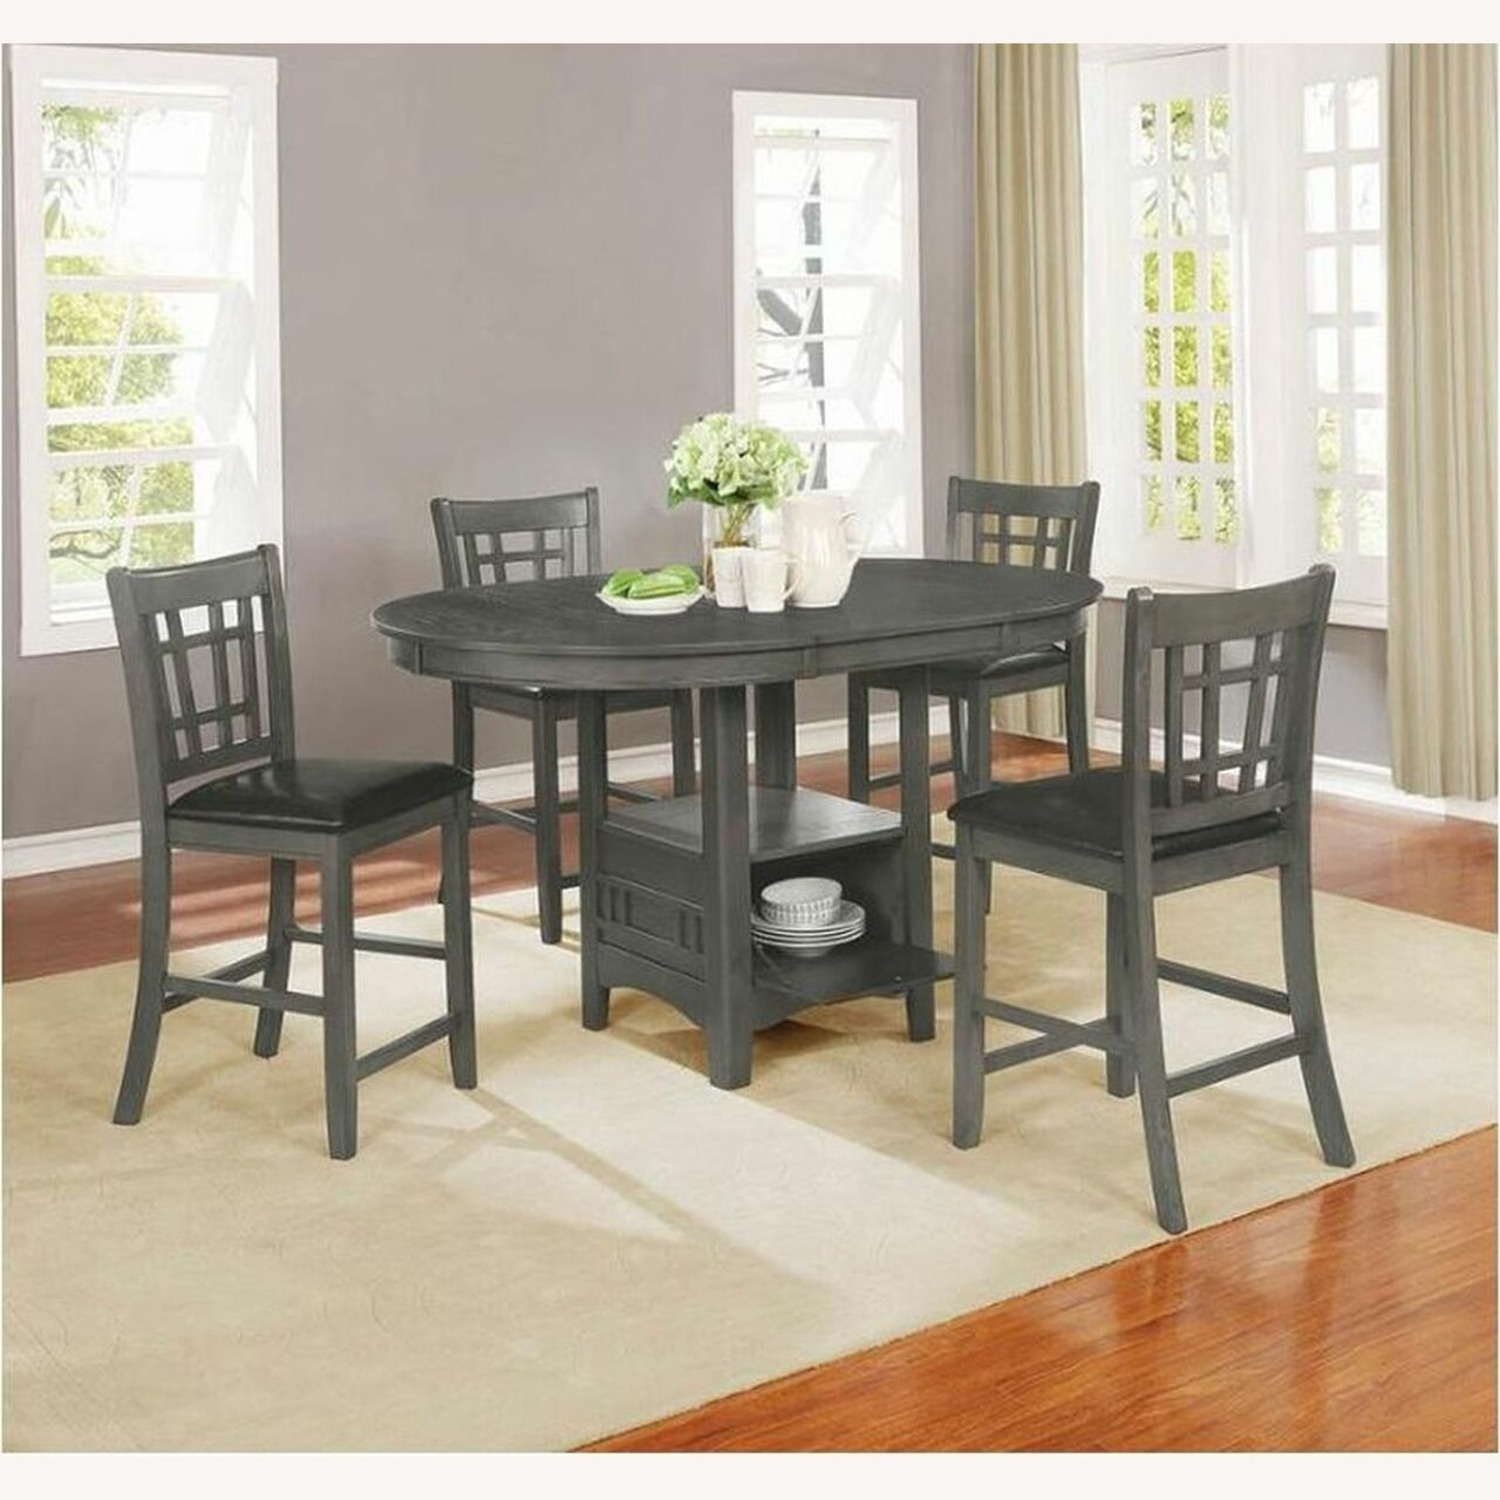 Counter Dining Table In Medium Gray Finish - image-3